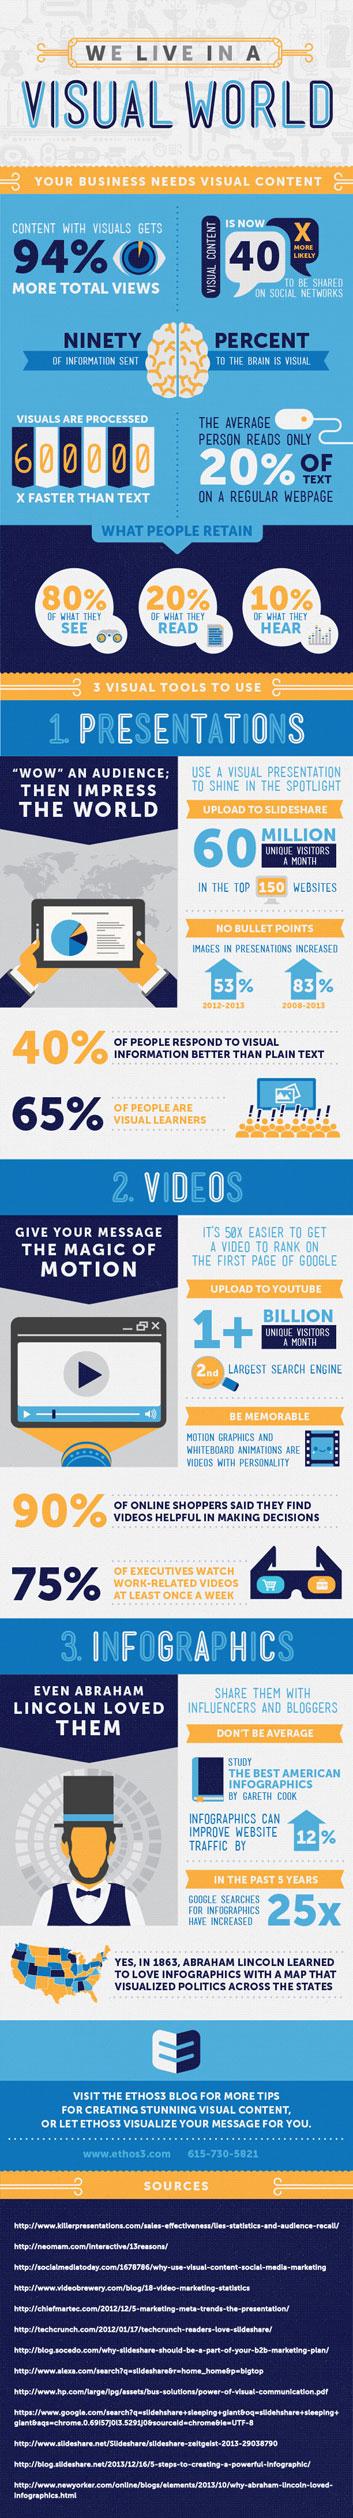 Visual World Study from Fast Company on Why We're More Likely to Remember Content with Images and Video